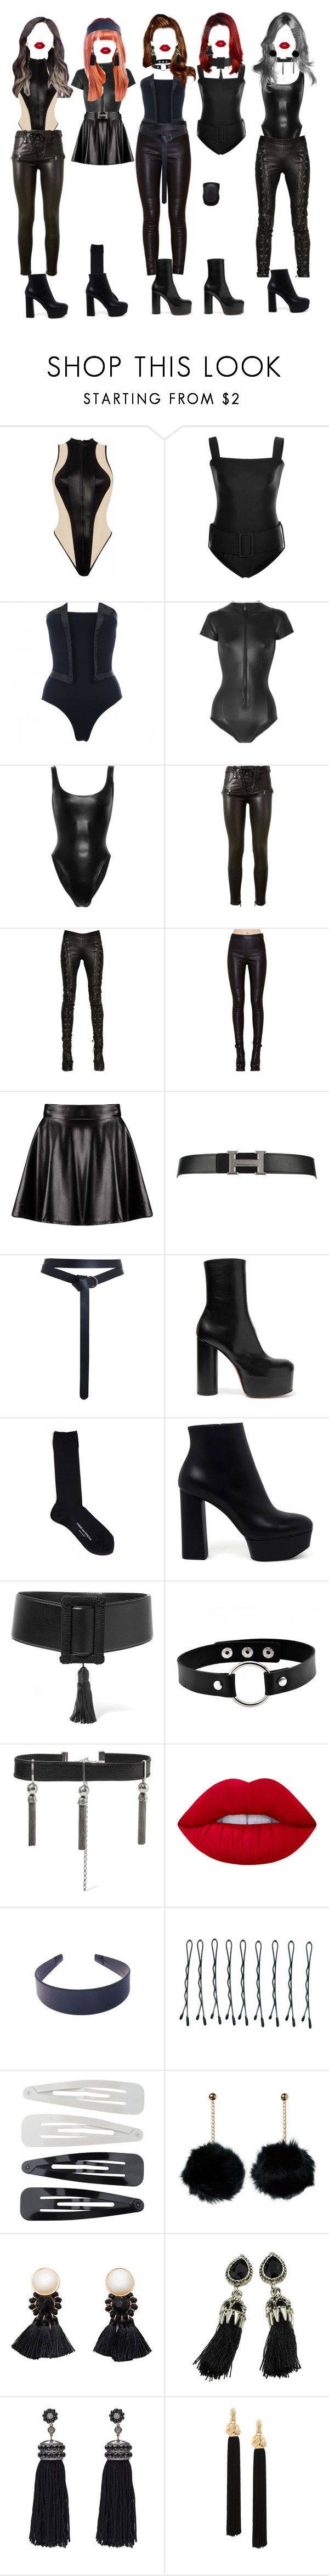 """""""G-1 _ ARMOR"""" by xxeucliffexx ❤ liked on Polyvore featuring Agent Provocateur, ADRIANA DEGREAS, Lisa Marie Fernandez, Norma Kamali, Unravel, A.F. Vandevorst, Boohoo, Jean-Paul Gaultier, Zimmermann and Vetements"""